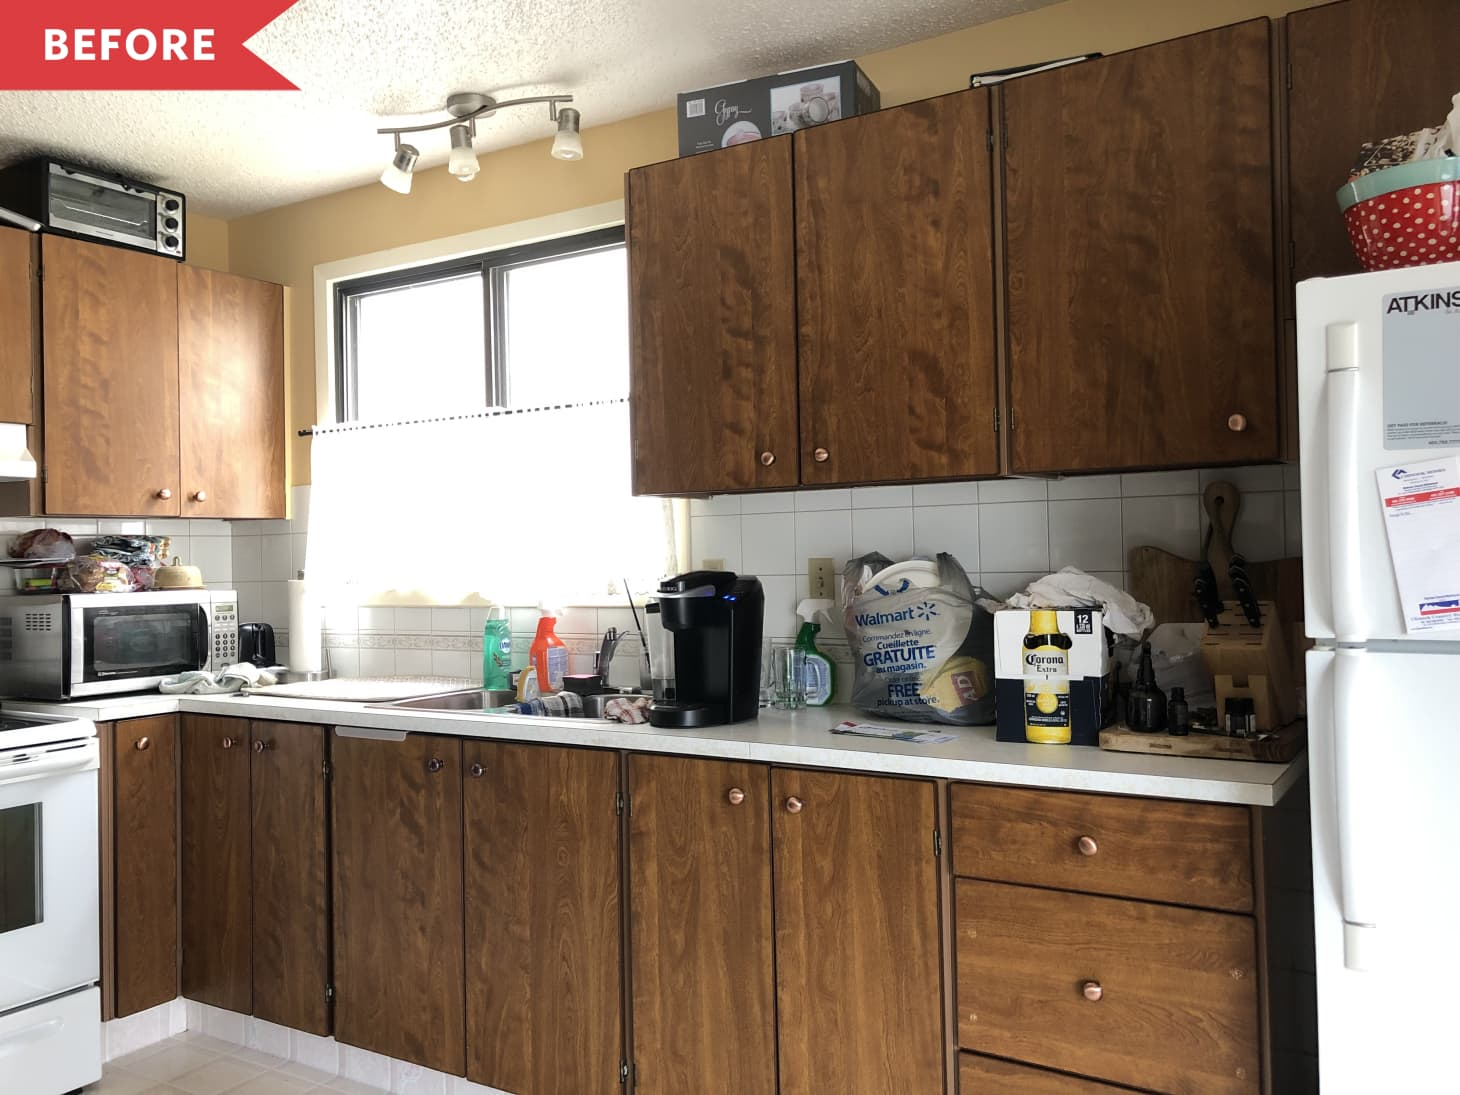 Before And After Budget Upgrades Totally Transformed This Kitchen